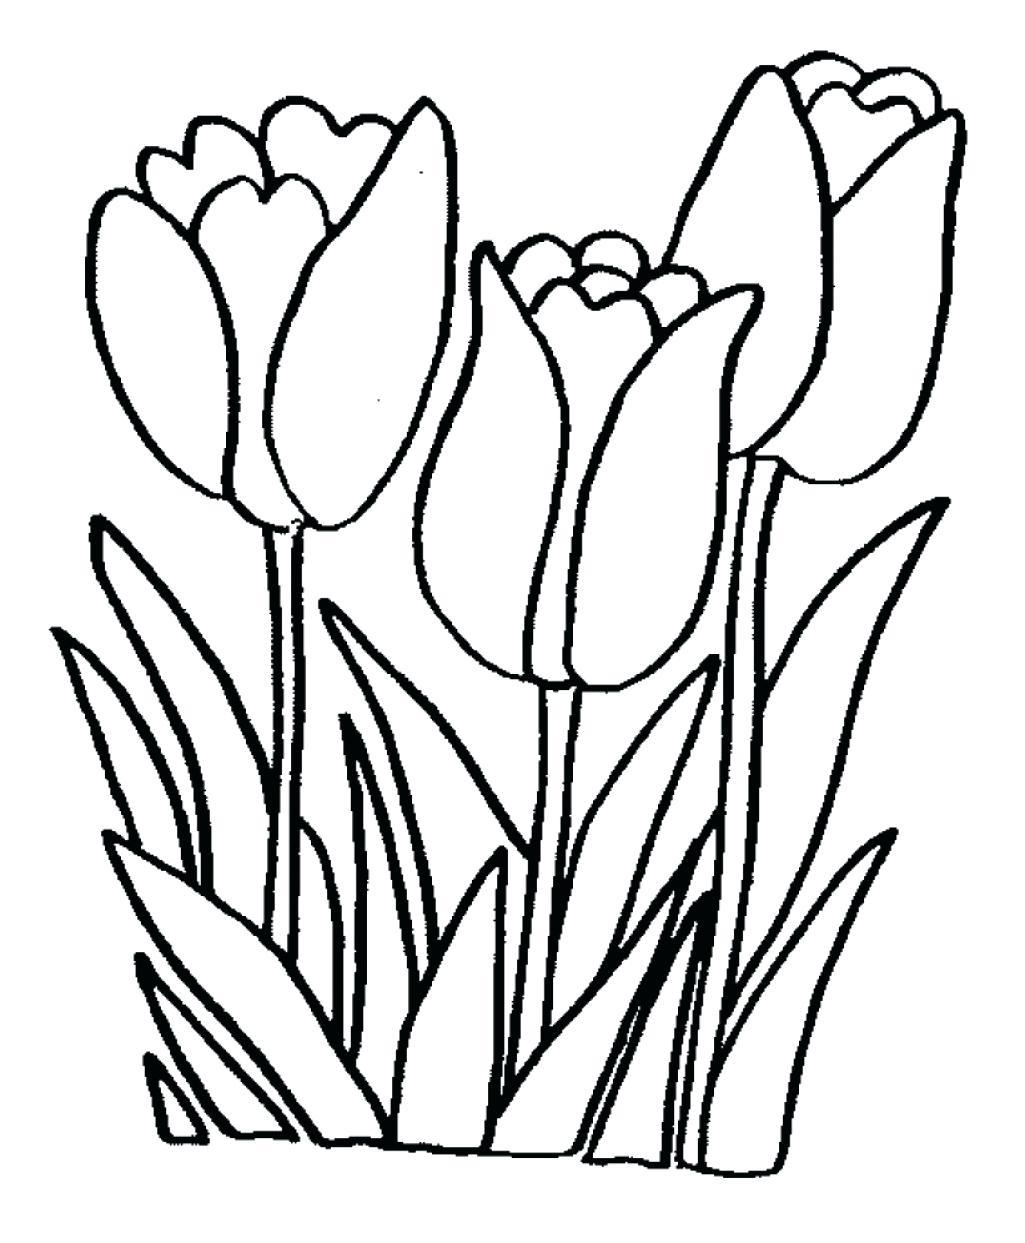 1025x1243 Shocking Draw A Single Flower Coloring Pages For When They Want